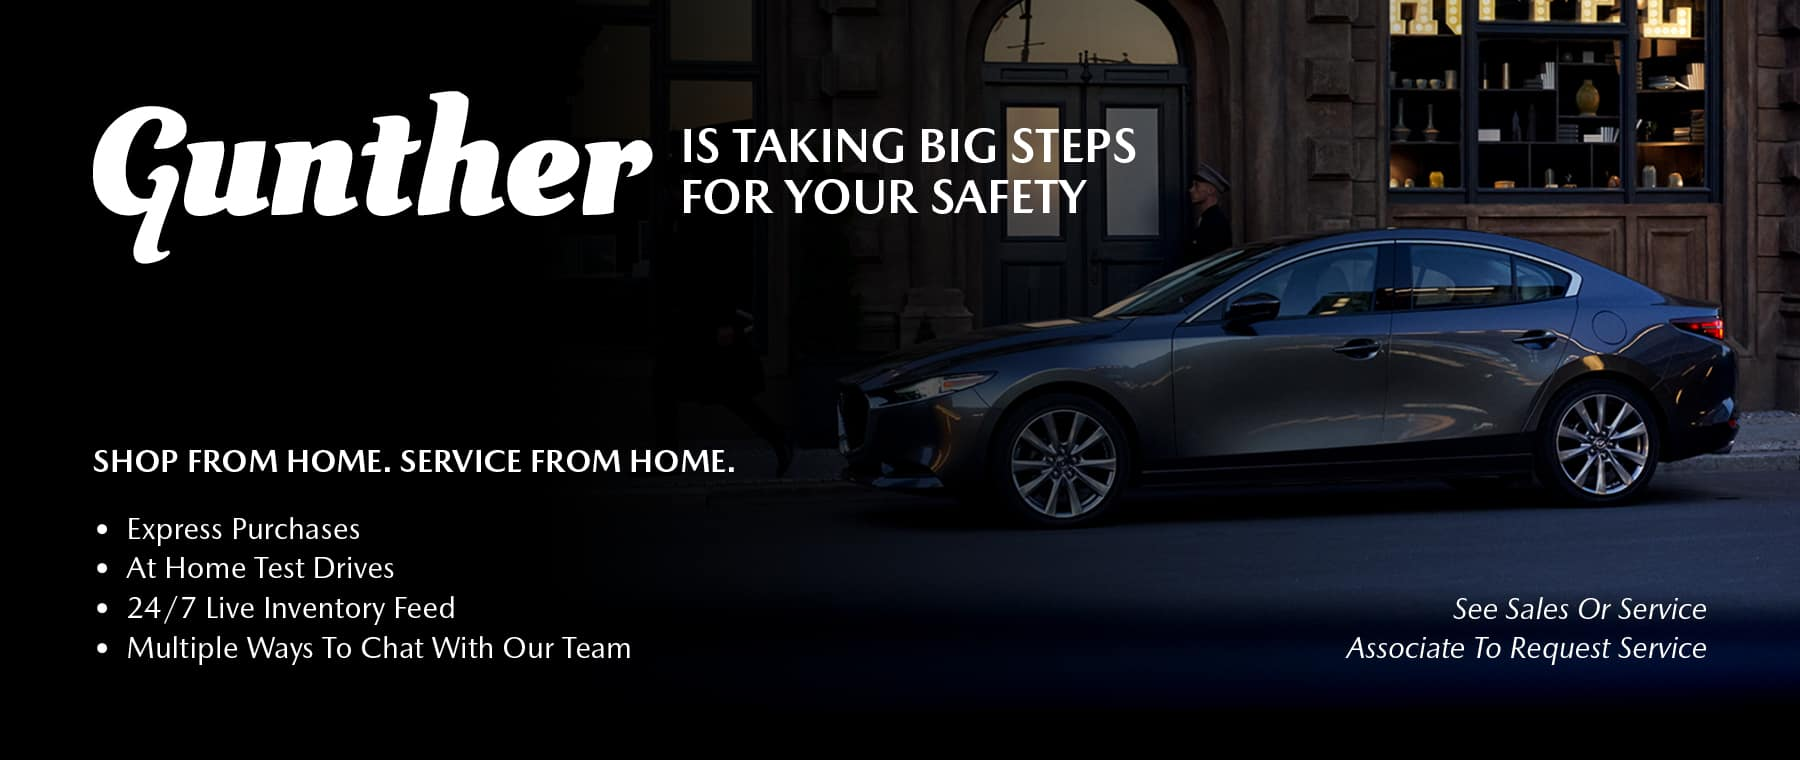 Gunther Is Taking Big Steps For Your Safety. Shop From Home. Service From Home. Express Purchases, At Home Test Drives, 24/7 Live Inventory Feed, Multiple Ways To Chat With Our Team. See Sales Or Service Associate To Request Service.